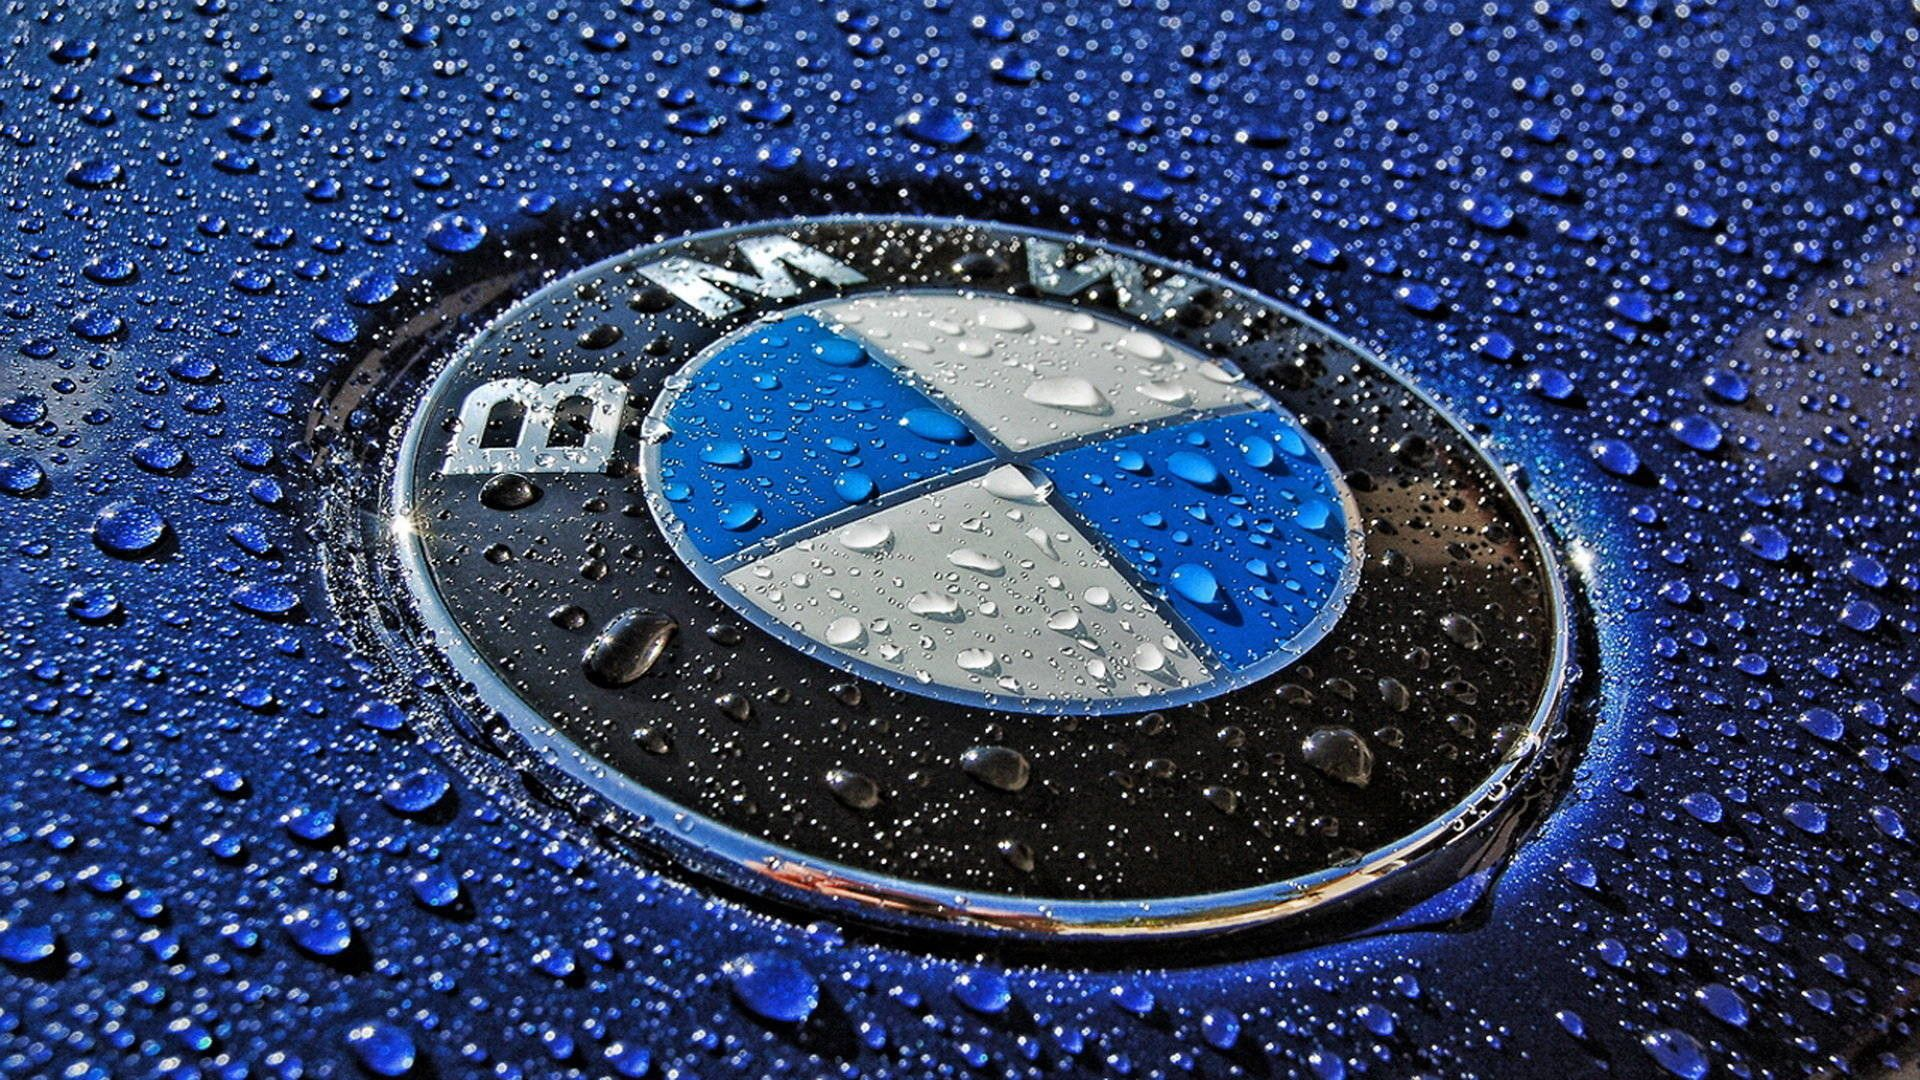 Bmw Logo Hd Wallpaper 70 Images In 2020 Bmw Iphone Wallpaper